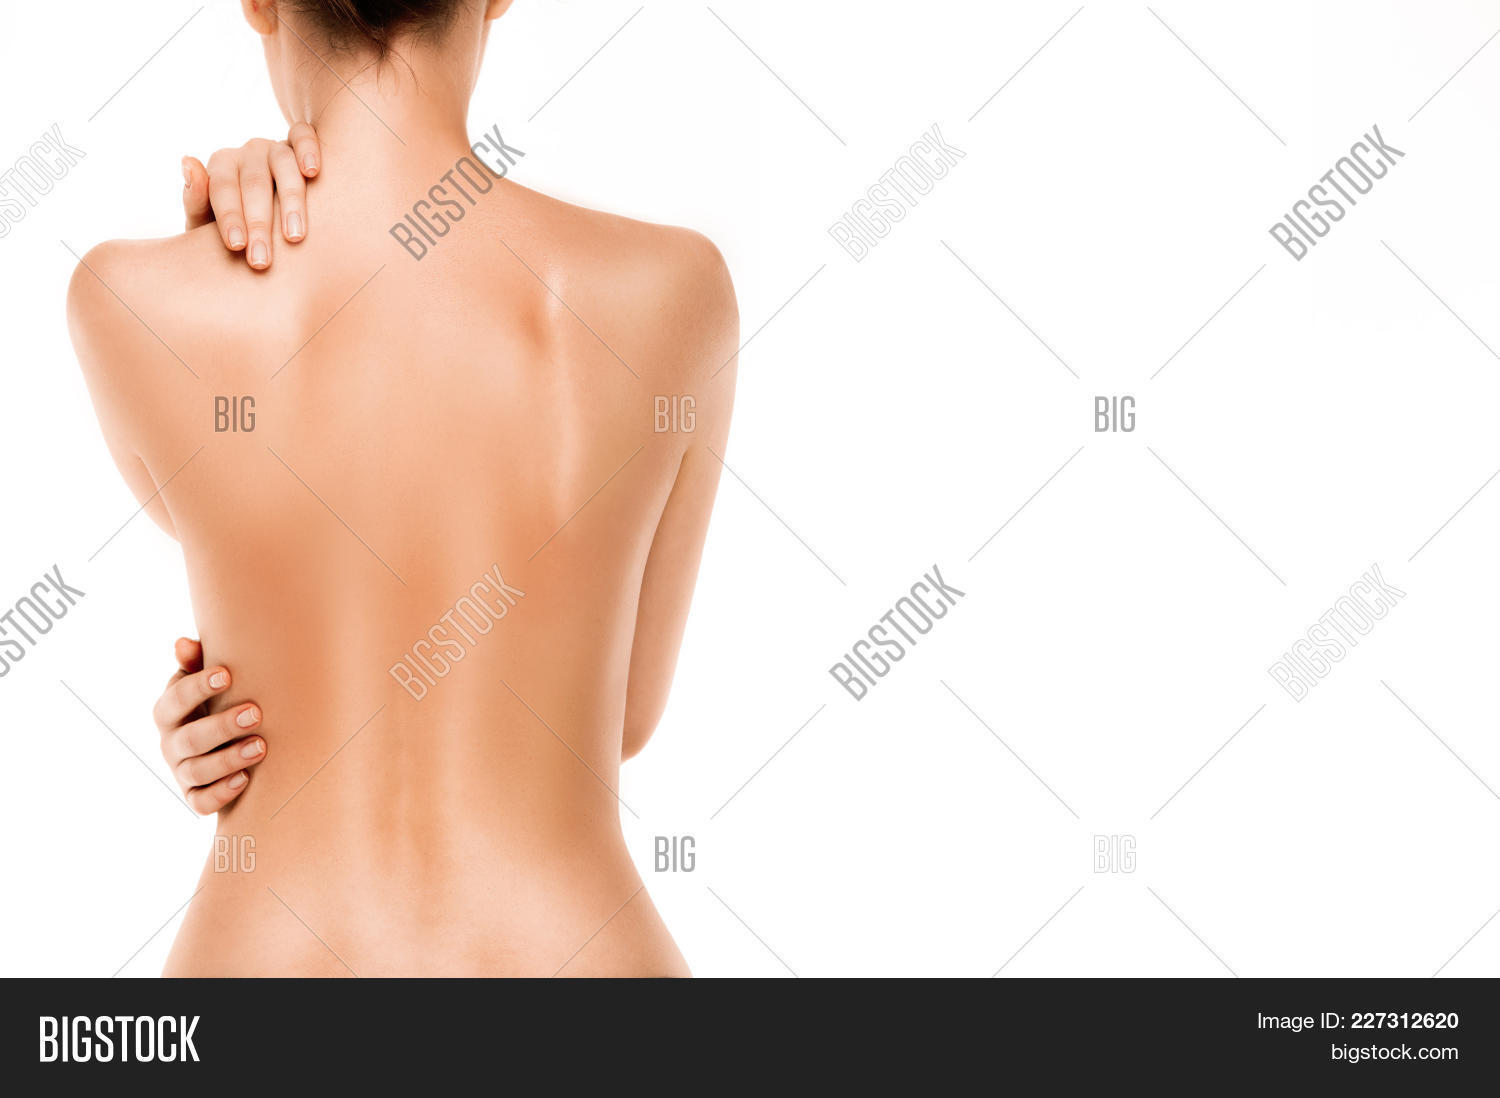 adult,attractive,back,background,beautiful,beauty,body,bodycare,brunette,care,caucasian,clean,cute,female,figure,girl,hair,hand,health,healthcare,healthy,hygiene,isolated,lady,lifestyle,model,naked,natural,nude,one,person,pose,pretty,sensual,sensuality,sexy,shape,sitting,skin,skincare,slim,spa,therapy,treatment,waist,wellness,white,woman,women,young